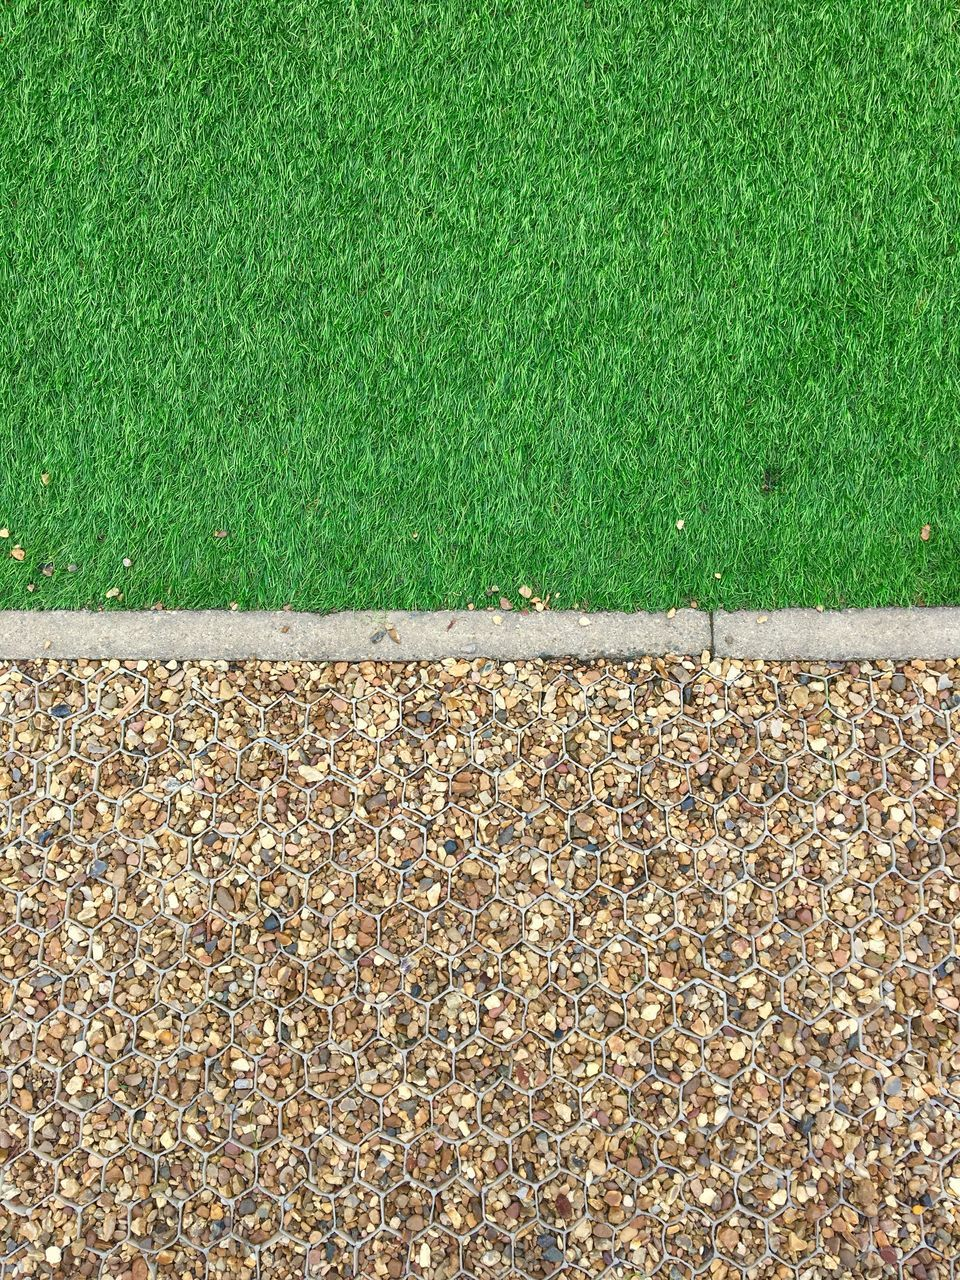 grass, leaf, green color, nature, high angle view, autumn, outdoors, day, no people, playing field, sport, soccer field